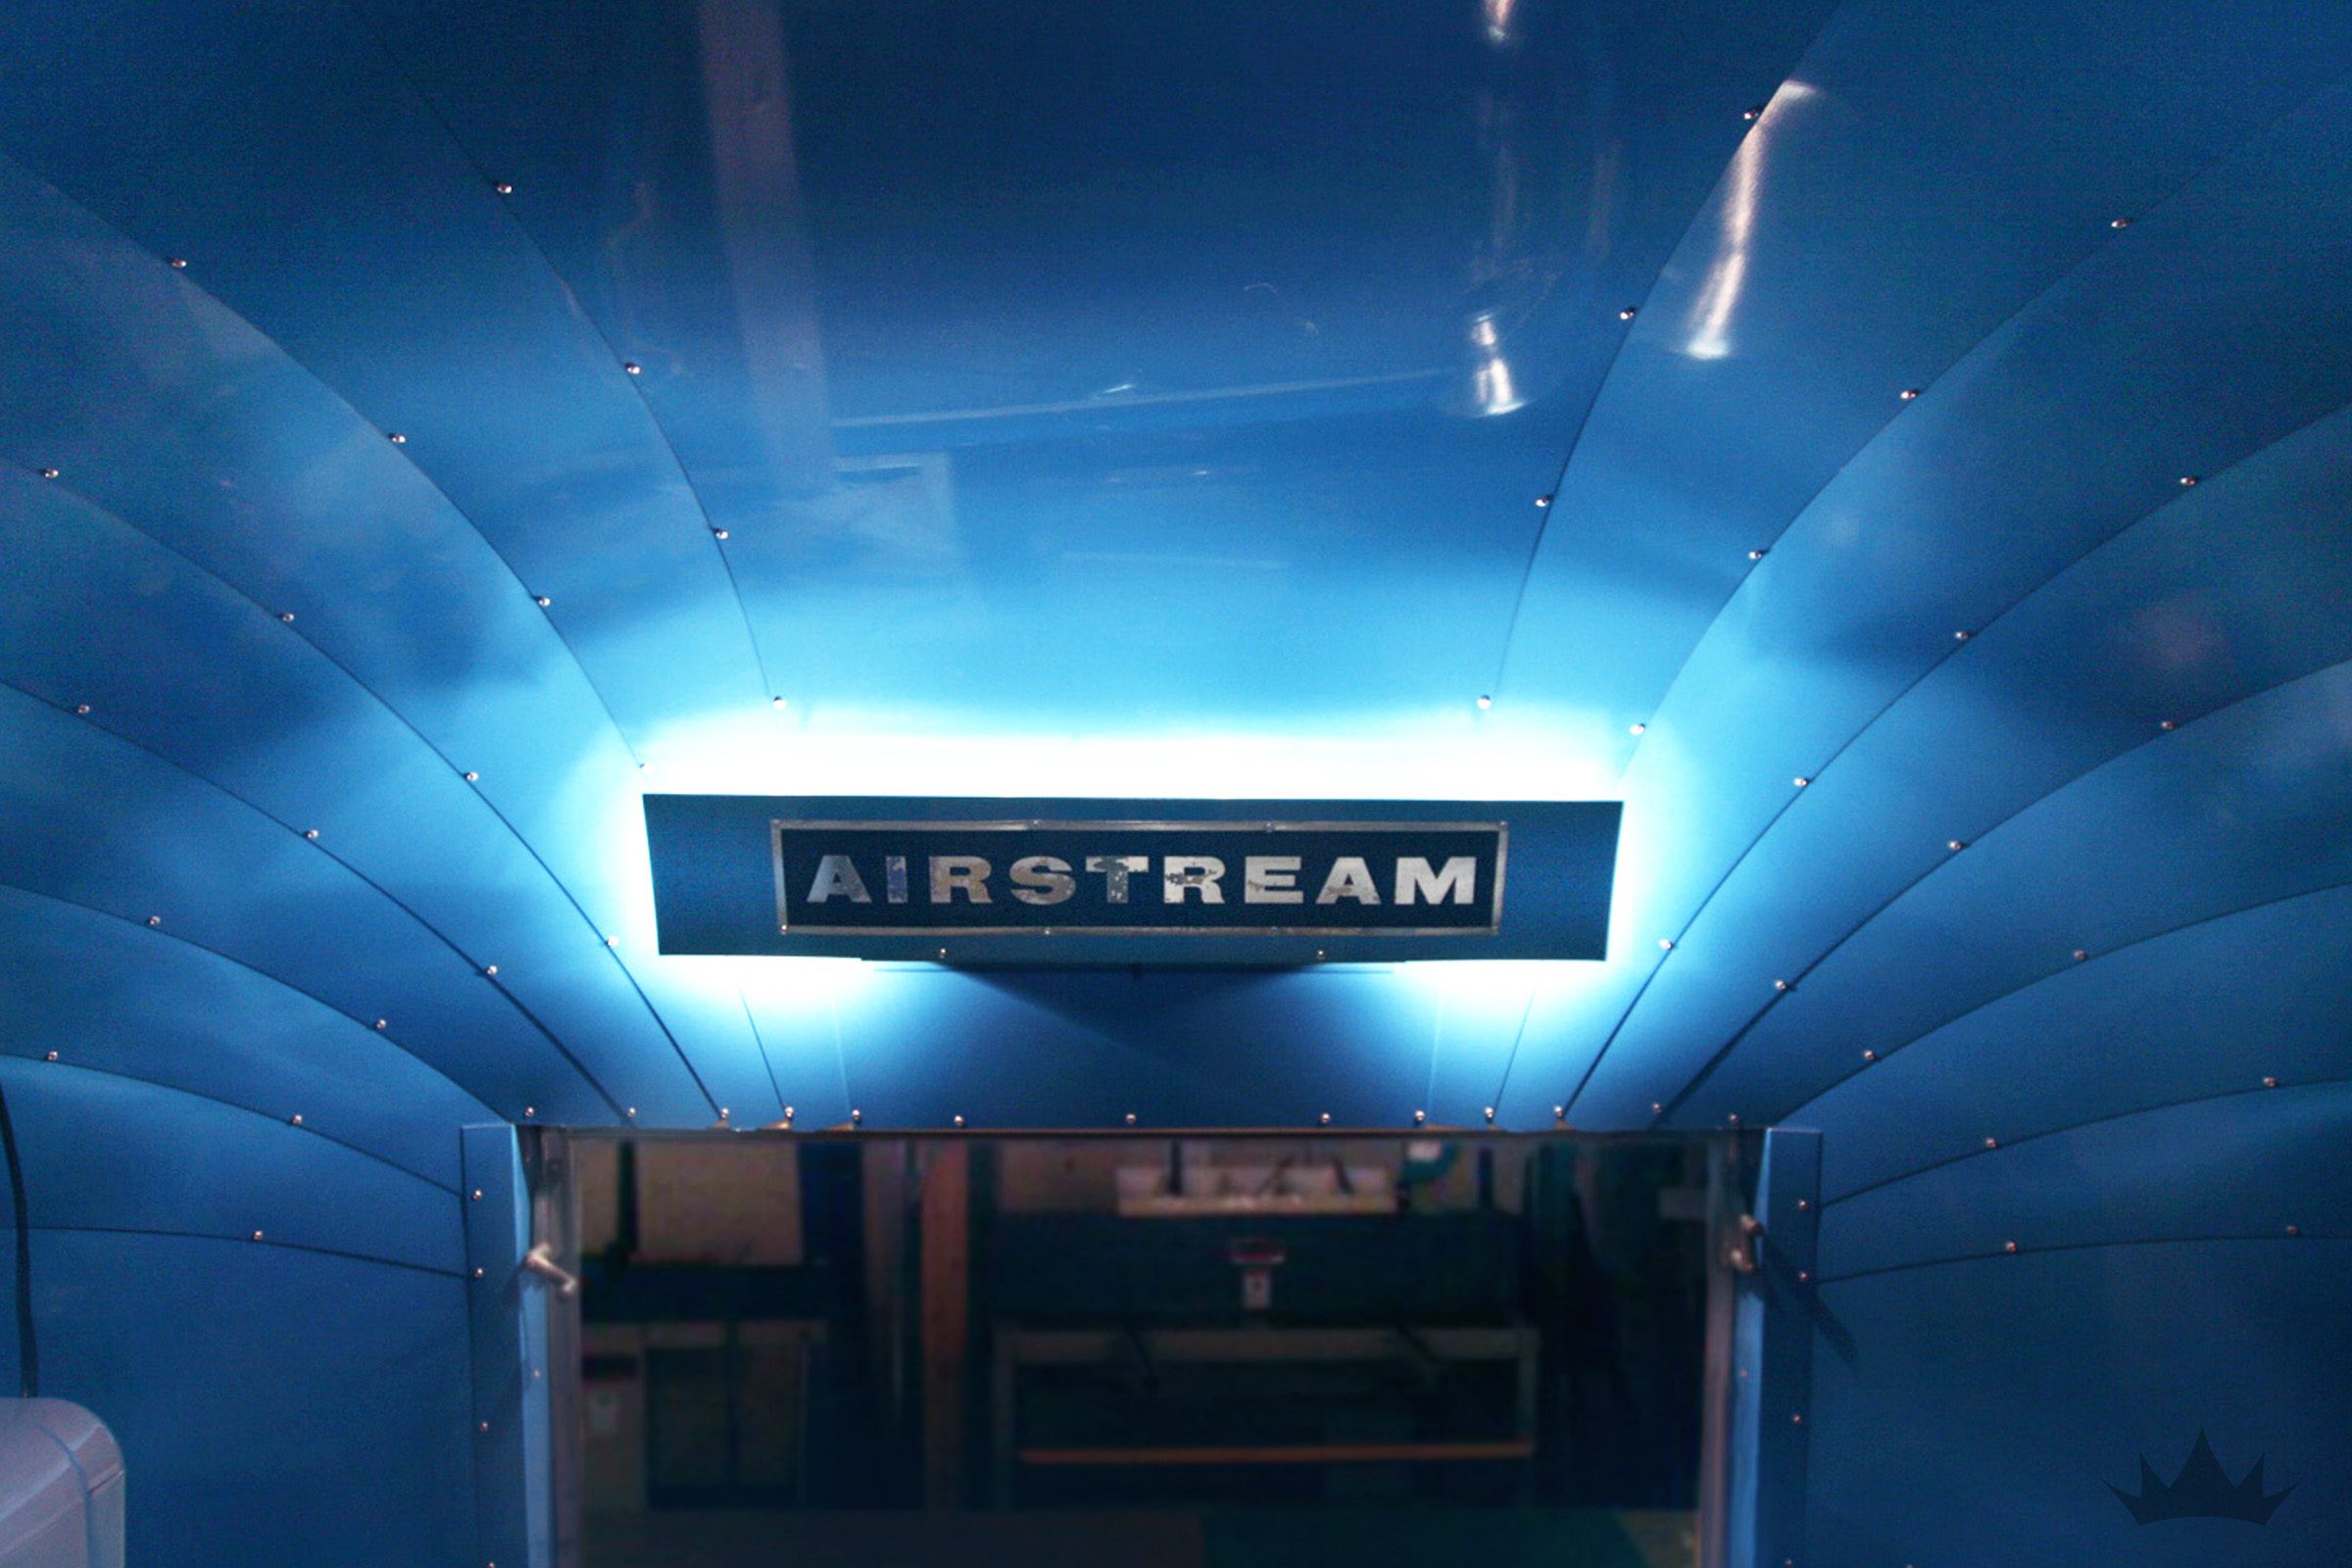 It doesn't get more custom than this! An Airstream emblem -turned light valance was the perfect finishing touch for an already Airstream blue bathroom.